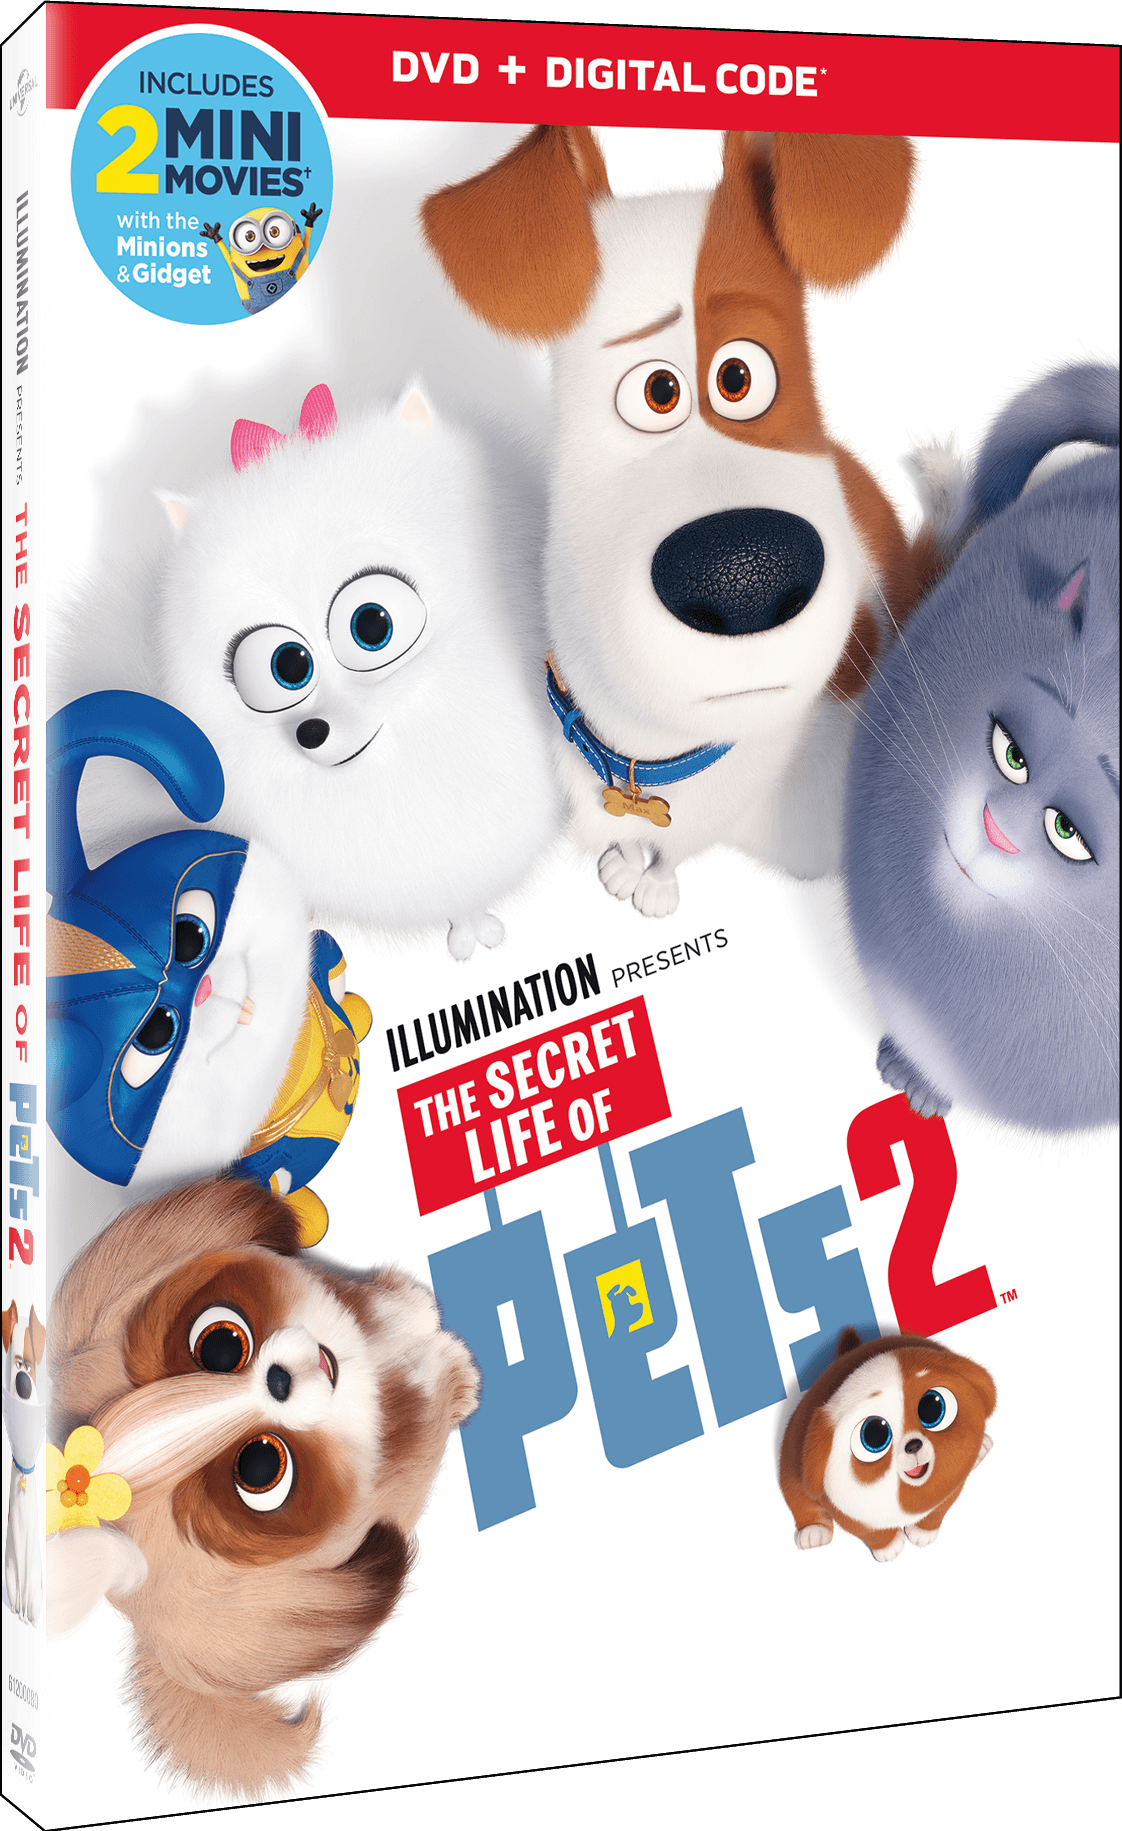 The Secret Life Of Pets 2 Own It On Digital Now 4k Ultra Hd Blu Ray Dvd Also Available On Demand